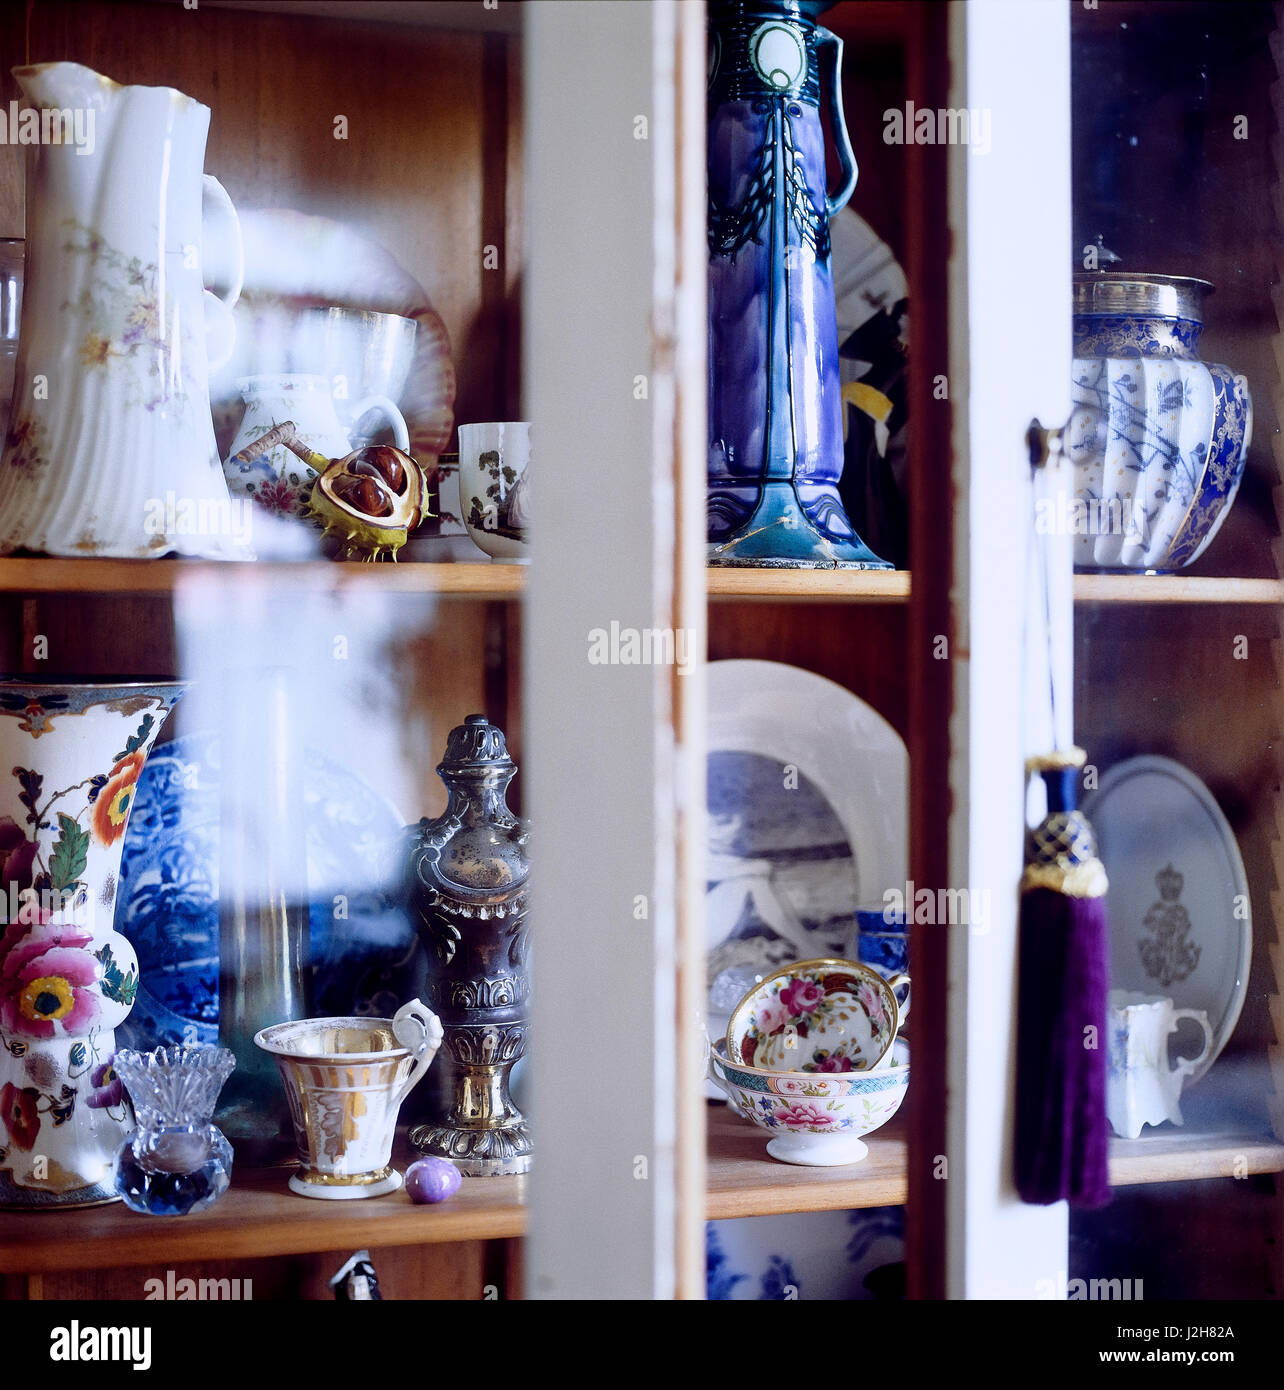 Shelves of vases and tableware. - Stock Image